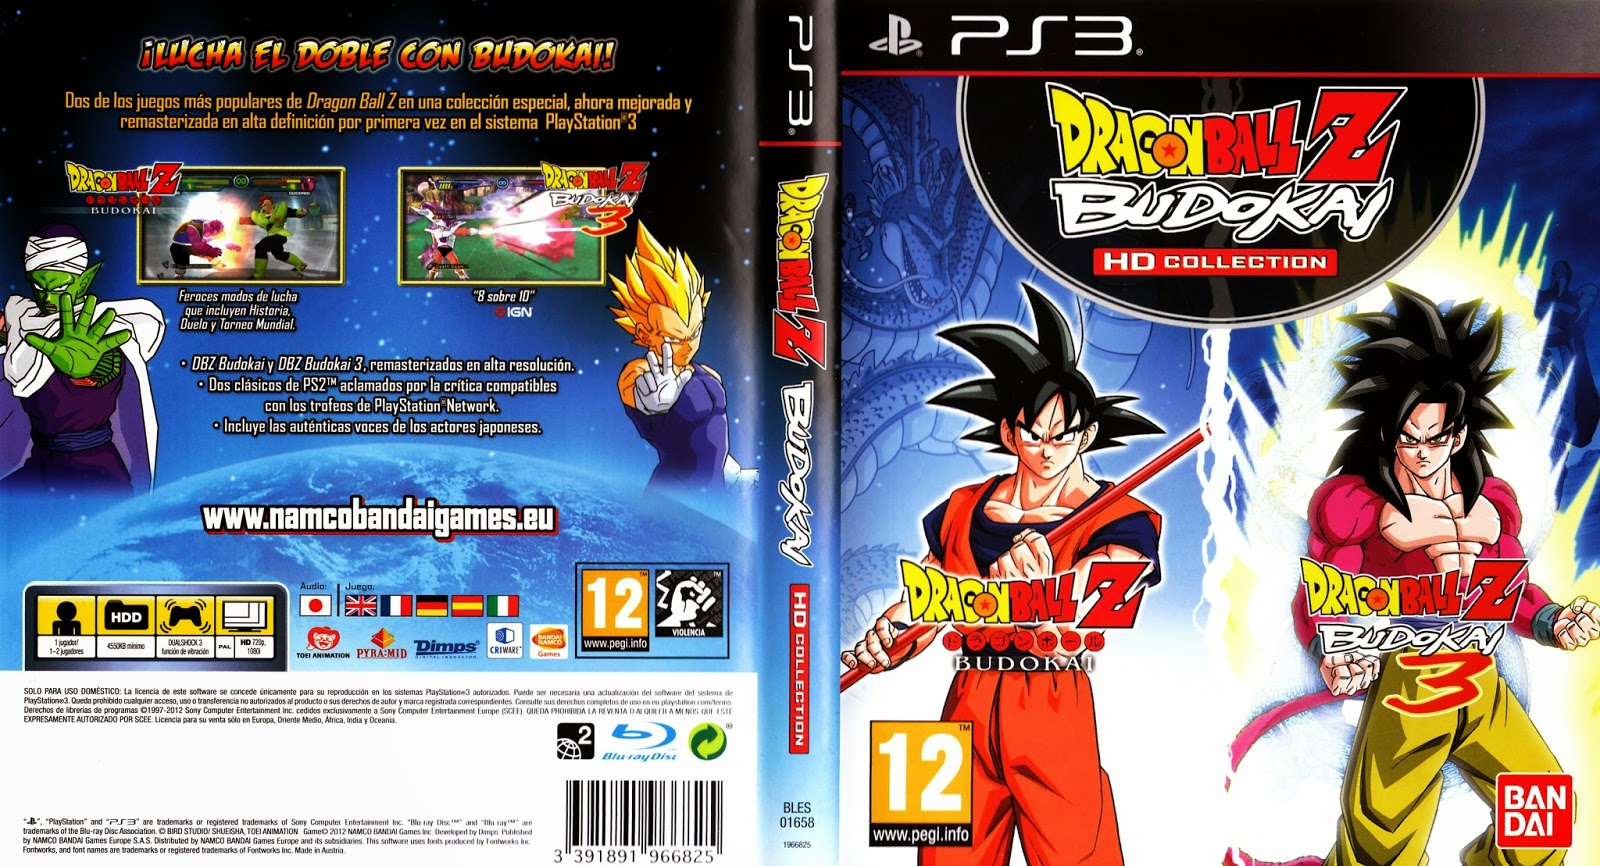 Caratulas Dragon Ball DRAGON BALL Z BUDOKAI HD COLLECTION